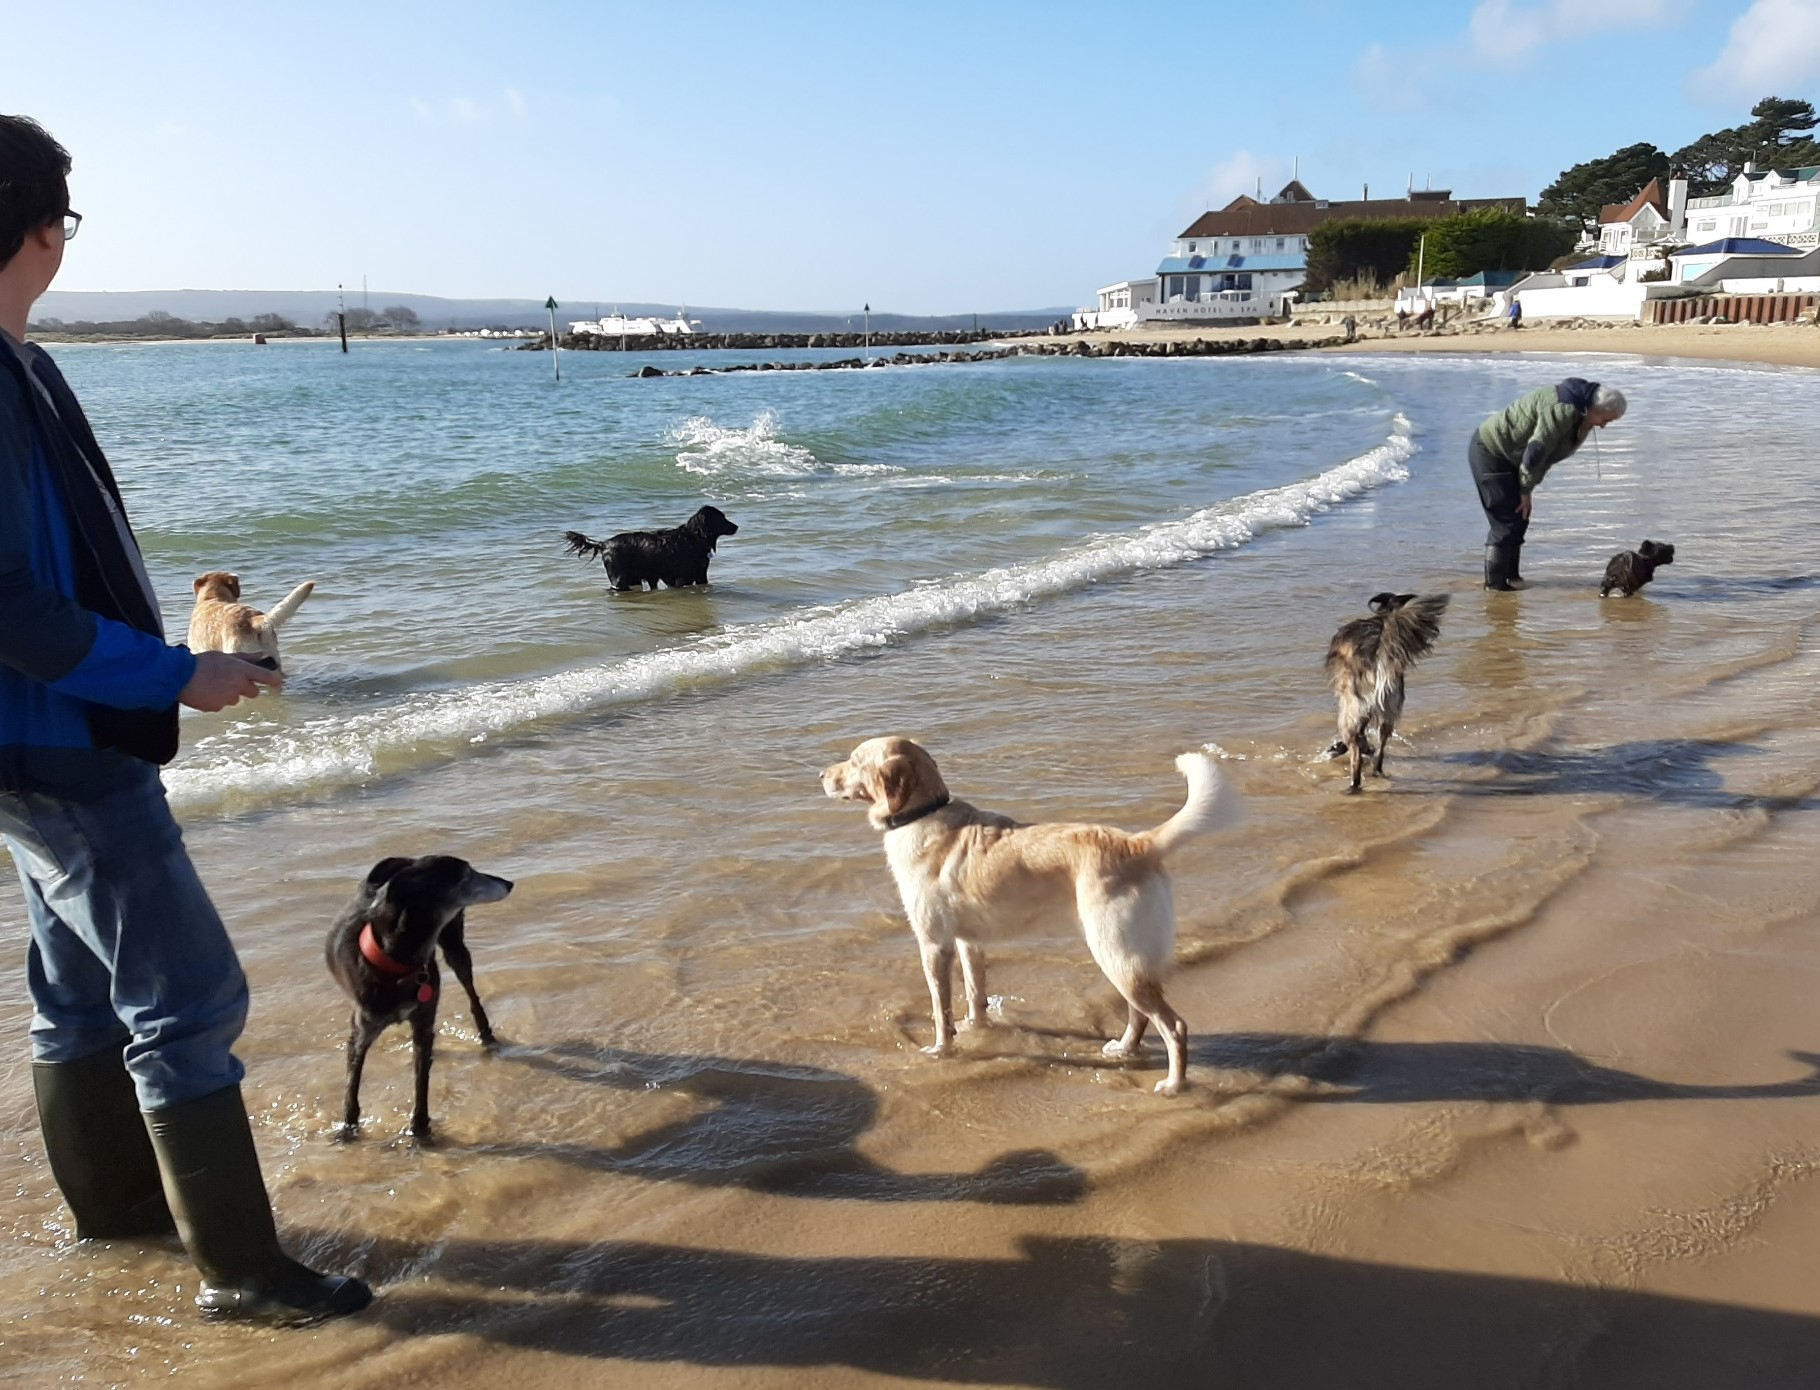 Dogs, & people in wellies, in winter sea on a bright day at Sandbanks Beach West all year round dog-friendly beach.